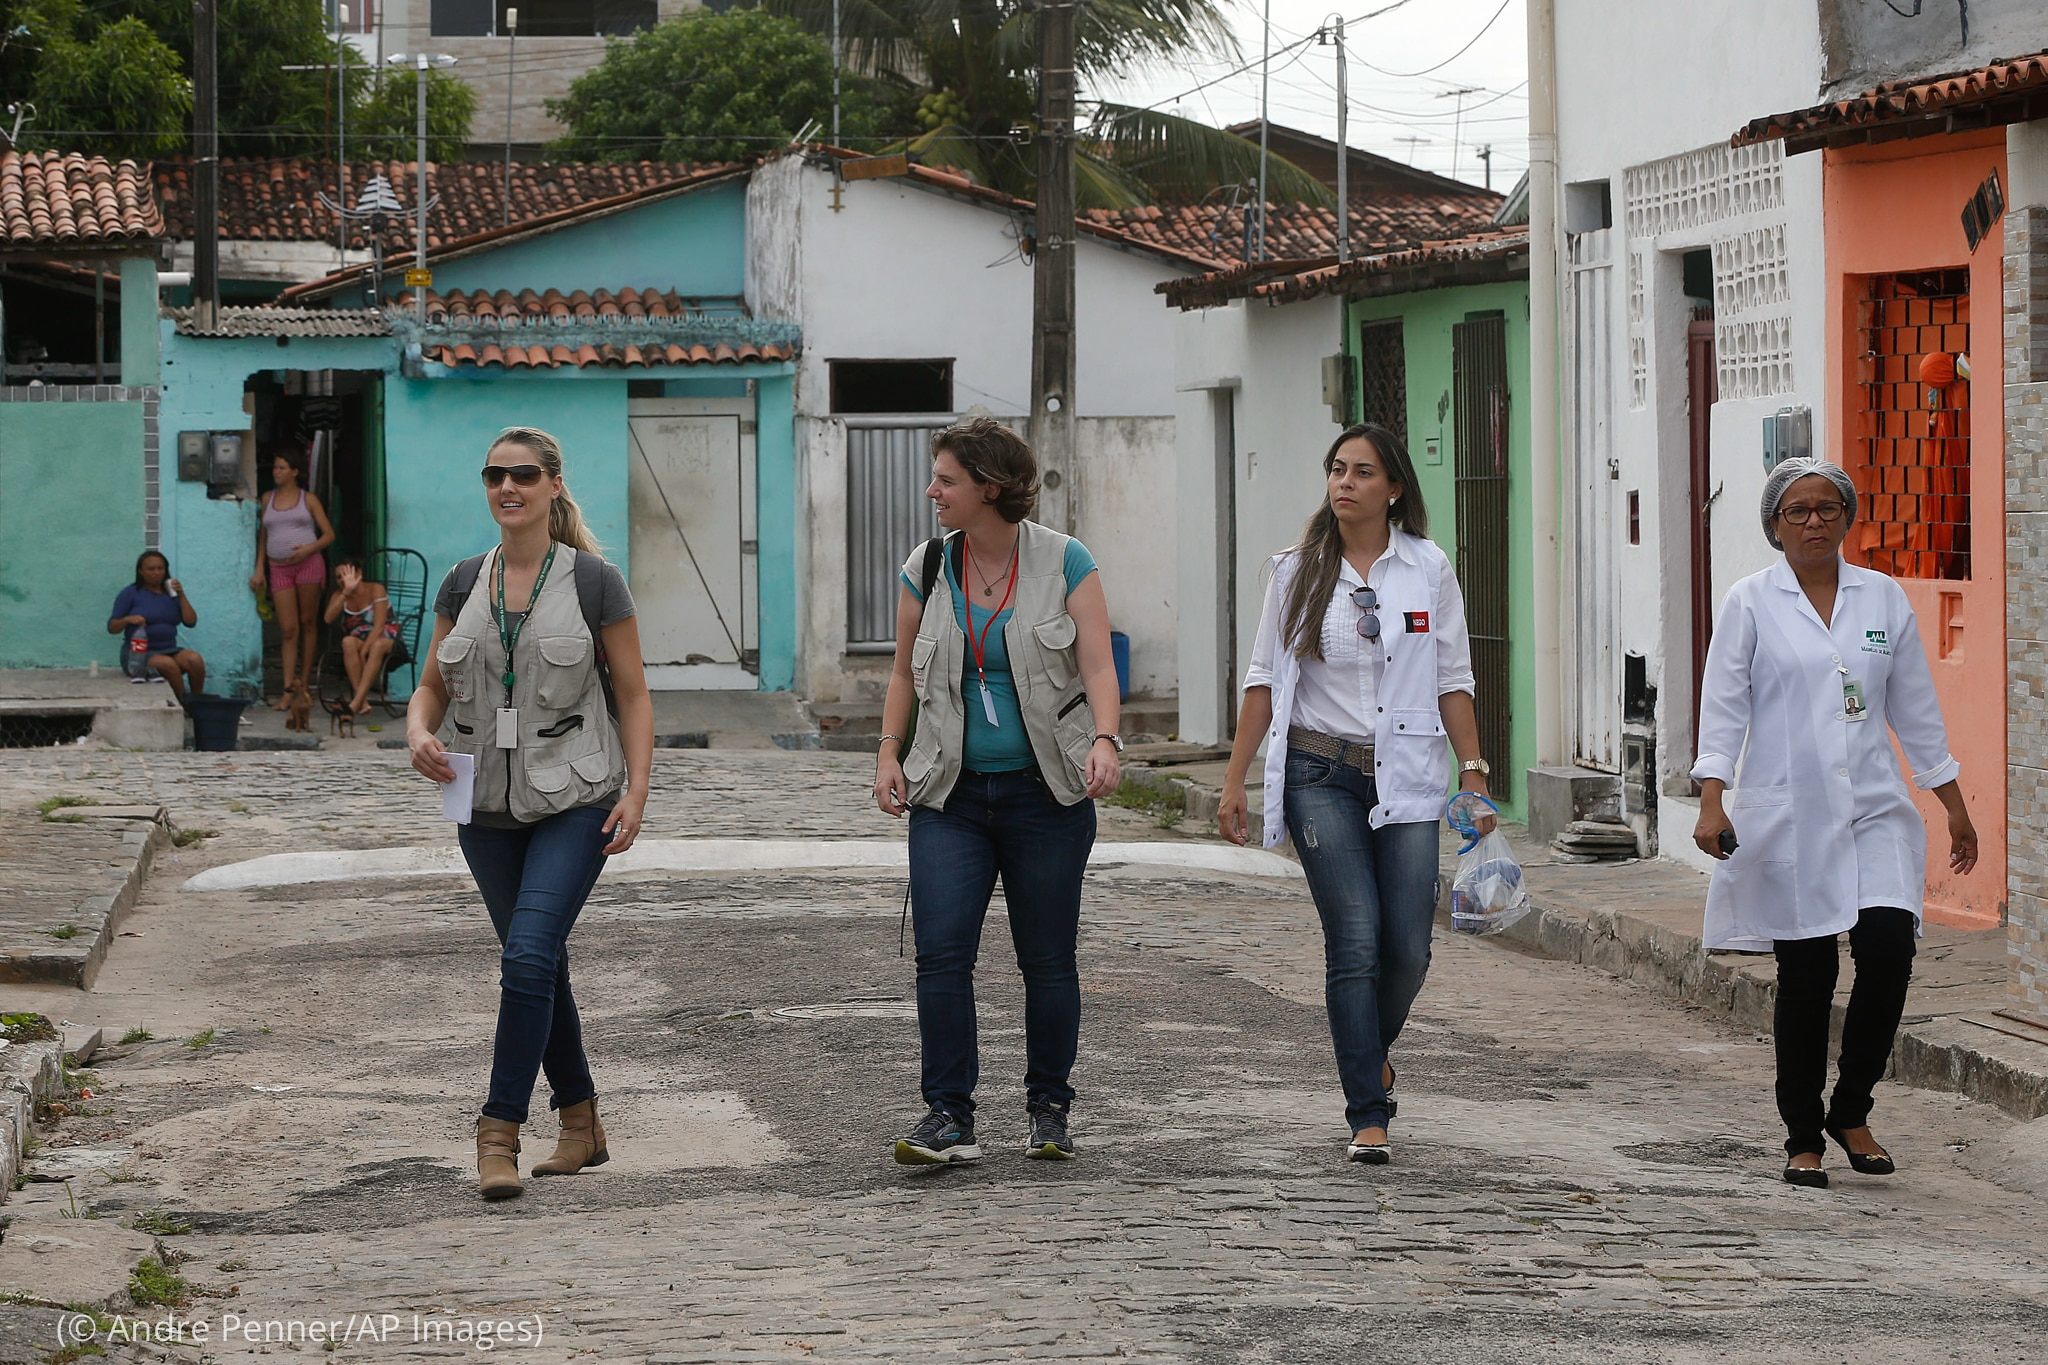 Four women, two in lab coats, walking down street (© Andre Penner/AP Images)